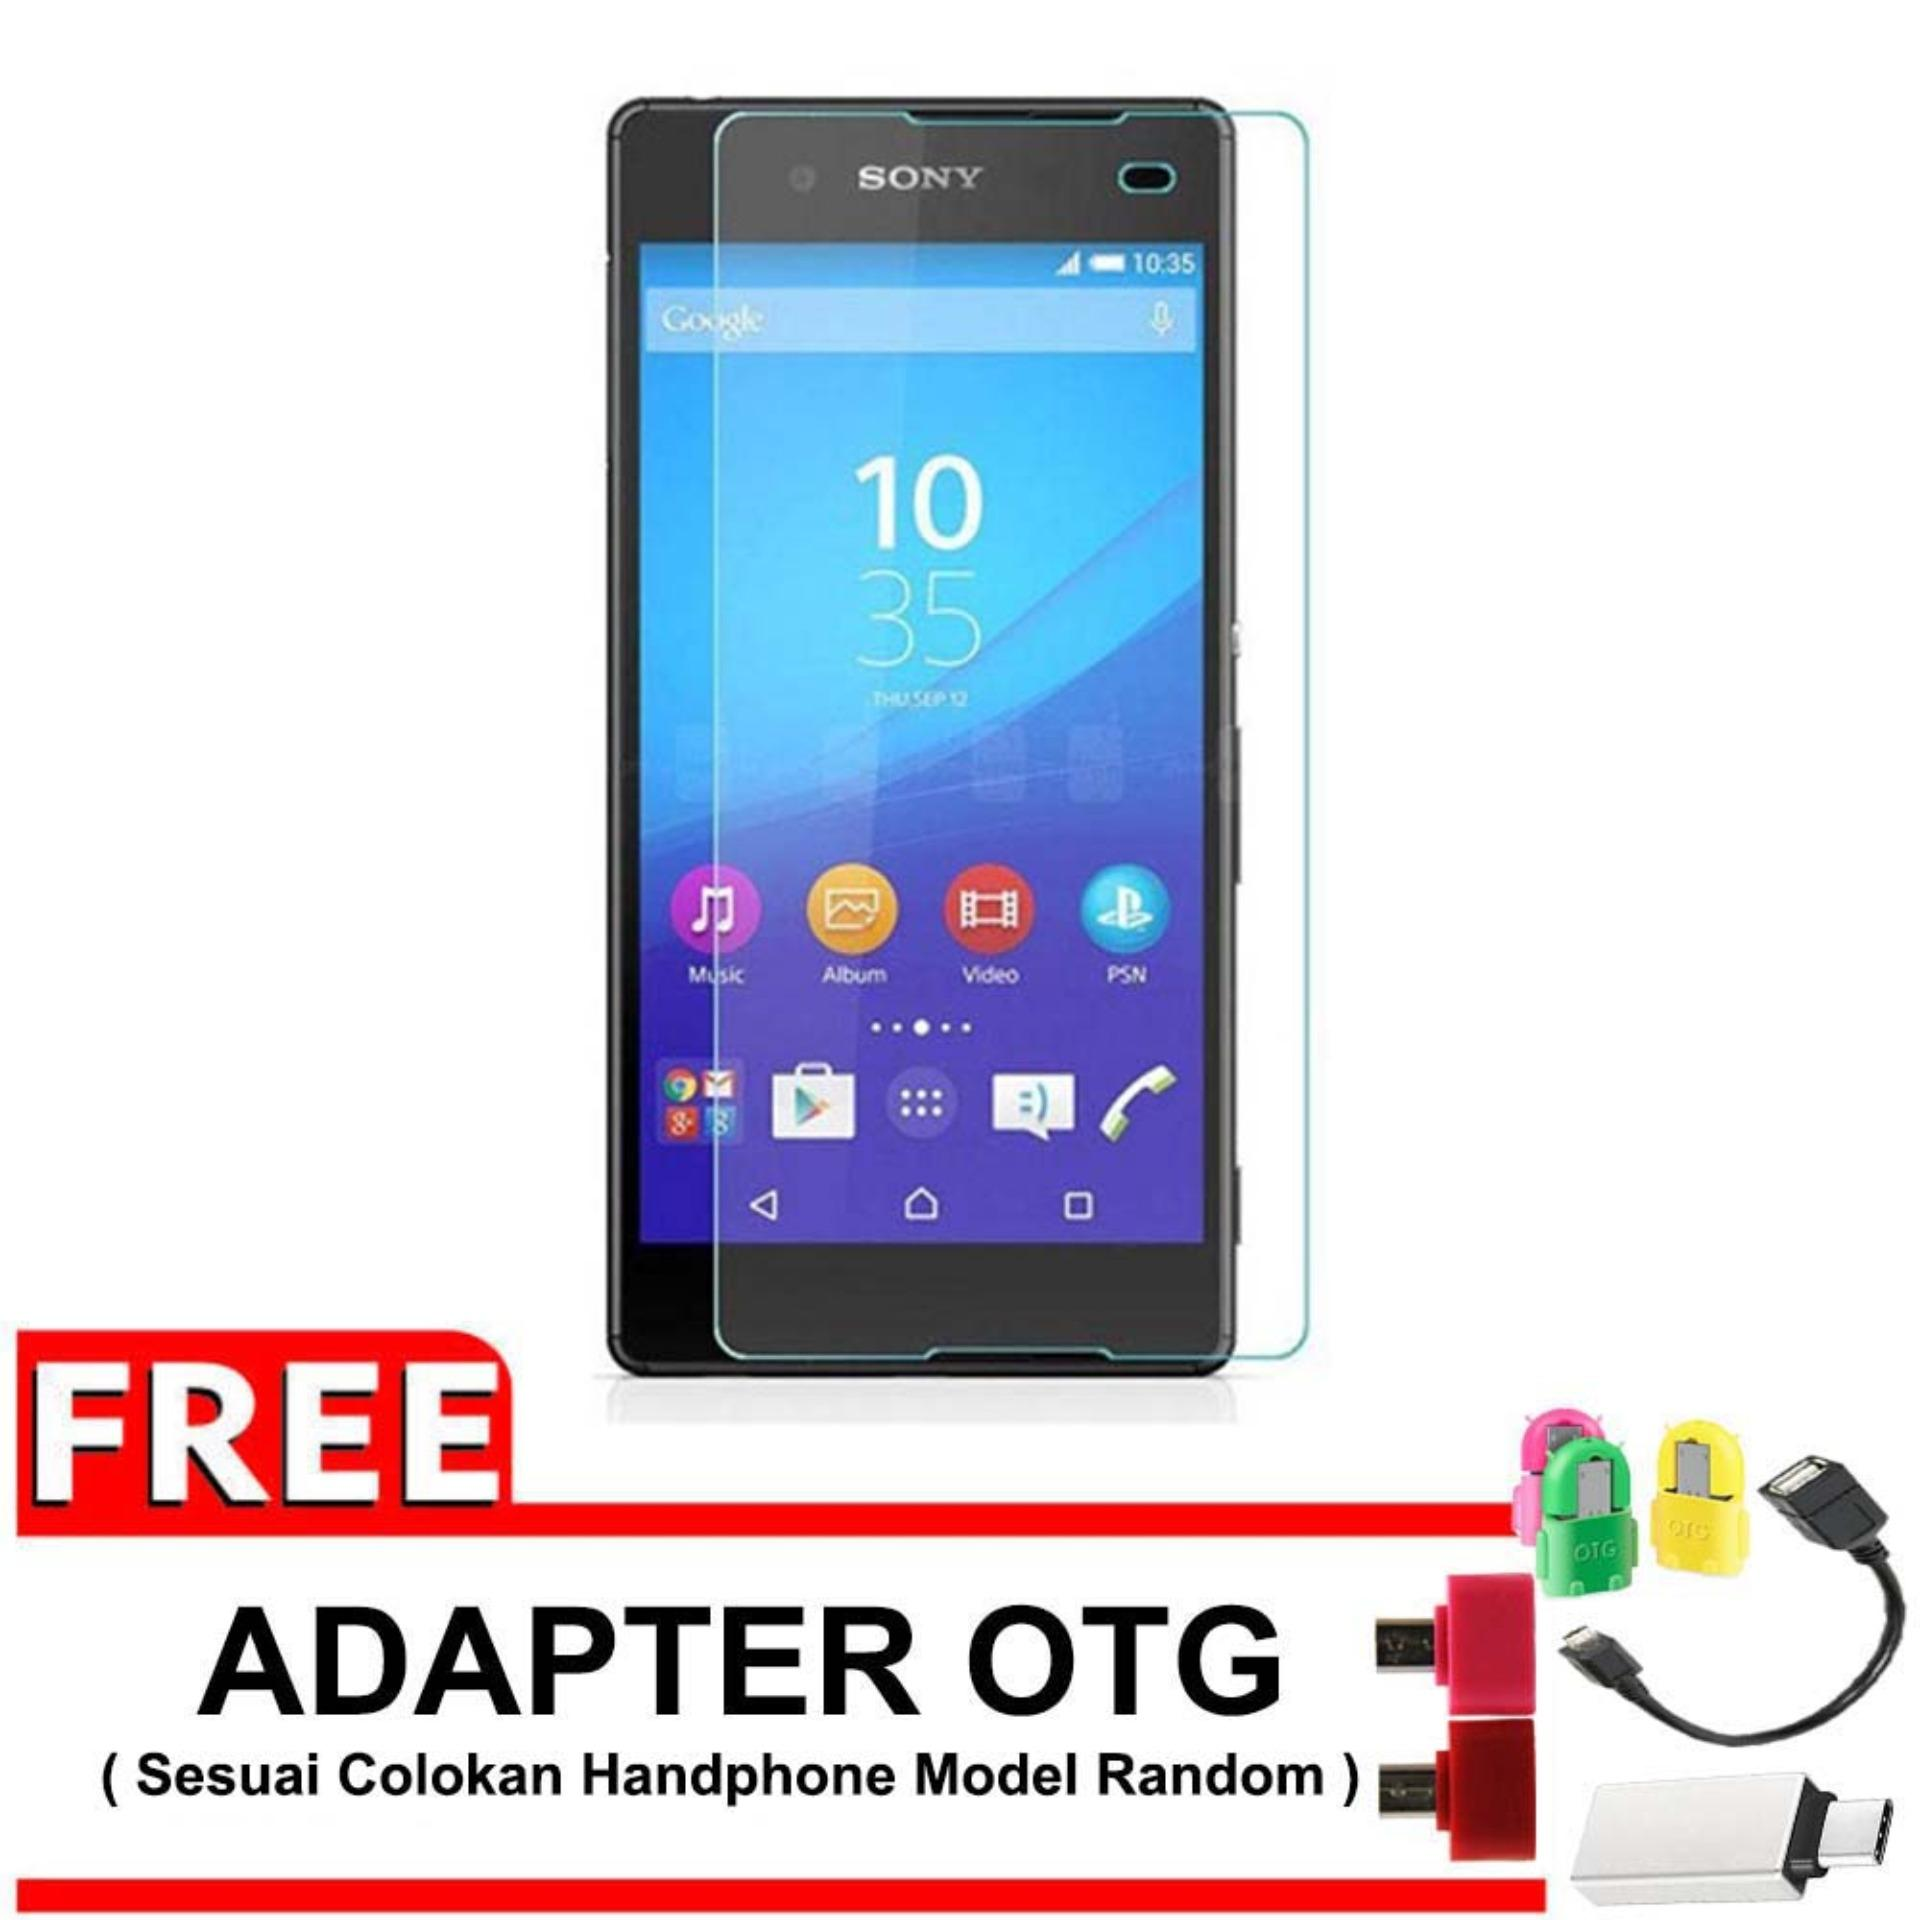 "Vn Sony Experia Xperia Z3+ Plus (5.2"") / Docomo / LTE Tempered Glass 9H Screen Protector 0.32mm + Gratis Free Adapter OTG - Bening Transparan"